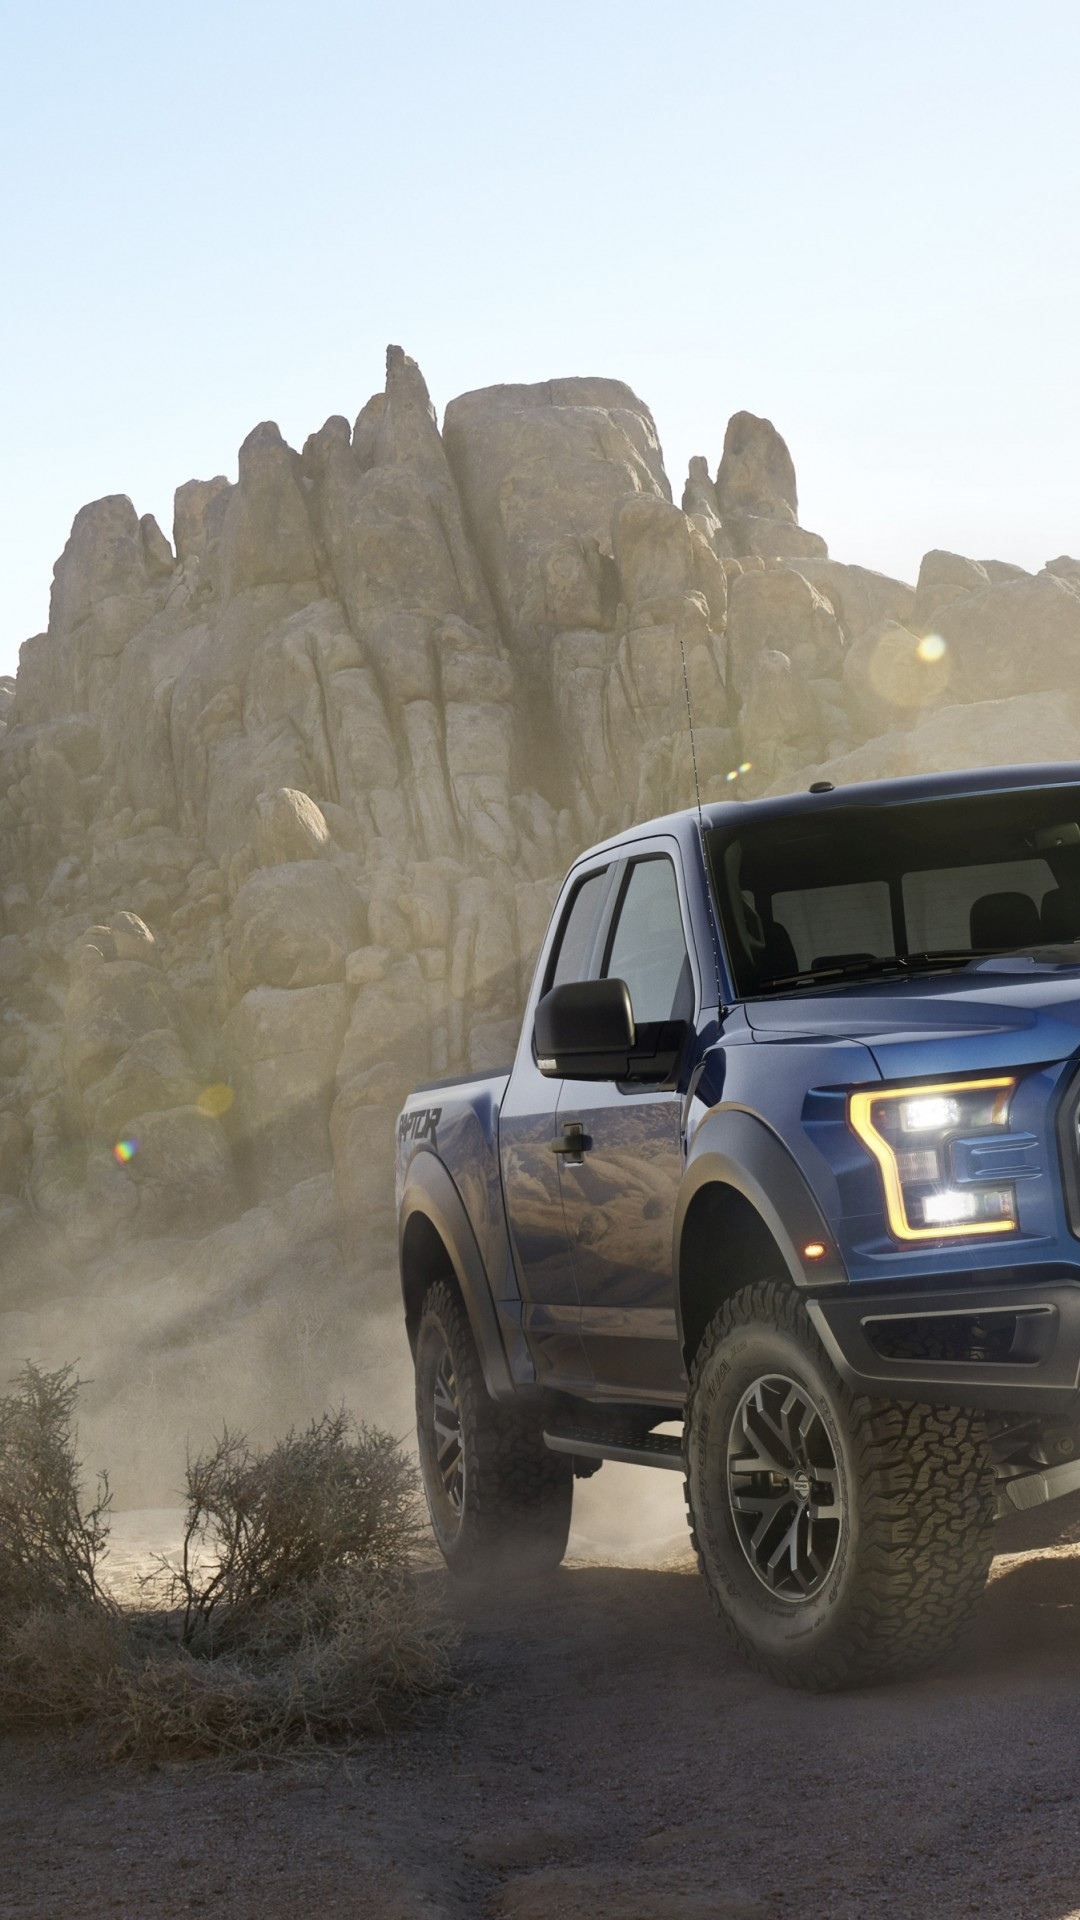 Ford F 150 Wiki : Wallpaper, Posted, Simpson